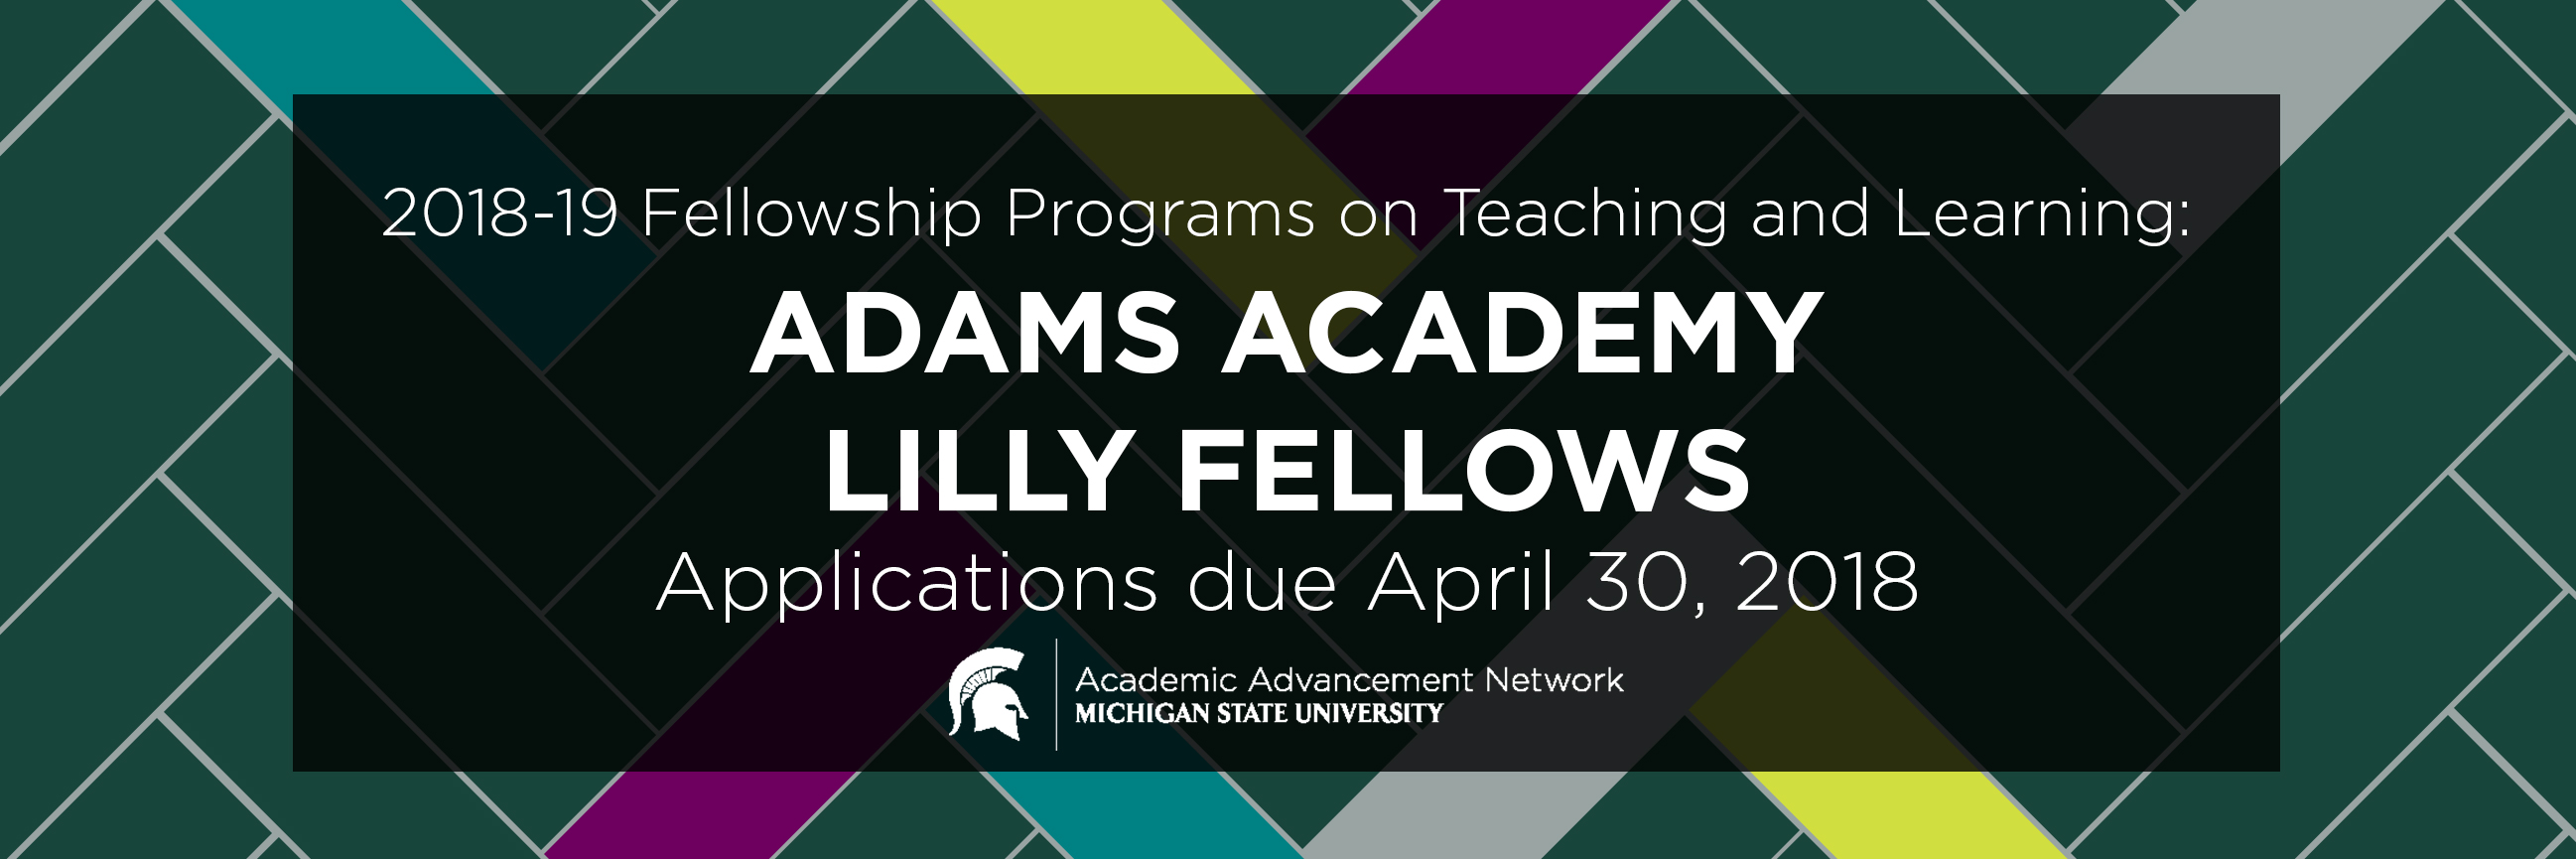 2018-19 Fellowship Programs on Teaching and Learning: Adams Academy, Lilly Fellows. Applications due April 30, 2018.